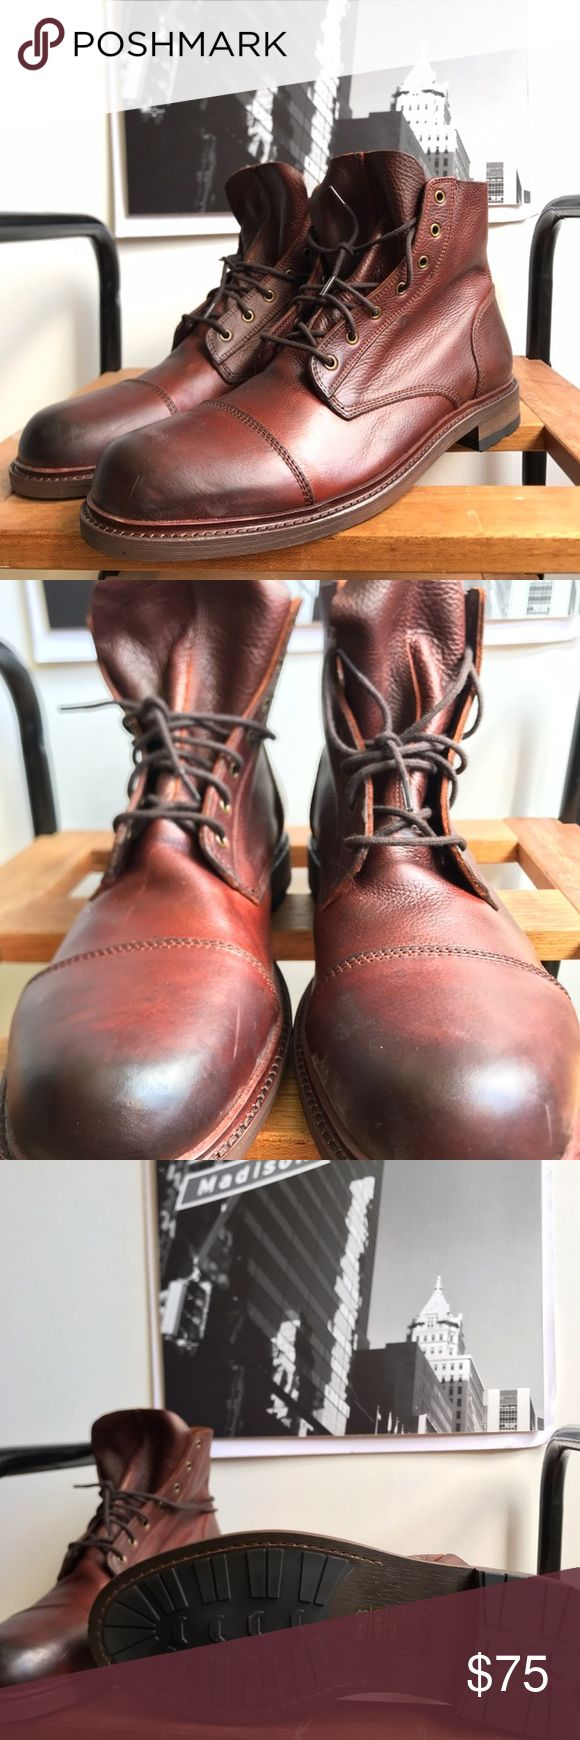 🙌🏾Brand New Aldo Boots #0197AO Brand new Aldo reddish brown genuine leather rugged style lace up boot. NO TRADES. NO LOWBALL OFFERS, Thank you! #boot #aldo #men #mensstyle #style #streetwear #boot #size46 #size13 #oxford #fallfashion #winterfashion #winter #fall #brownboot #btown #brandnew #aldoboot Aldo Shoes Boots